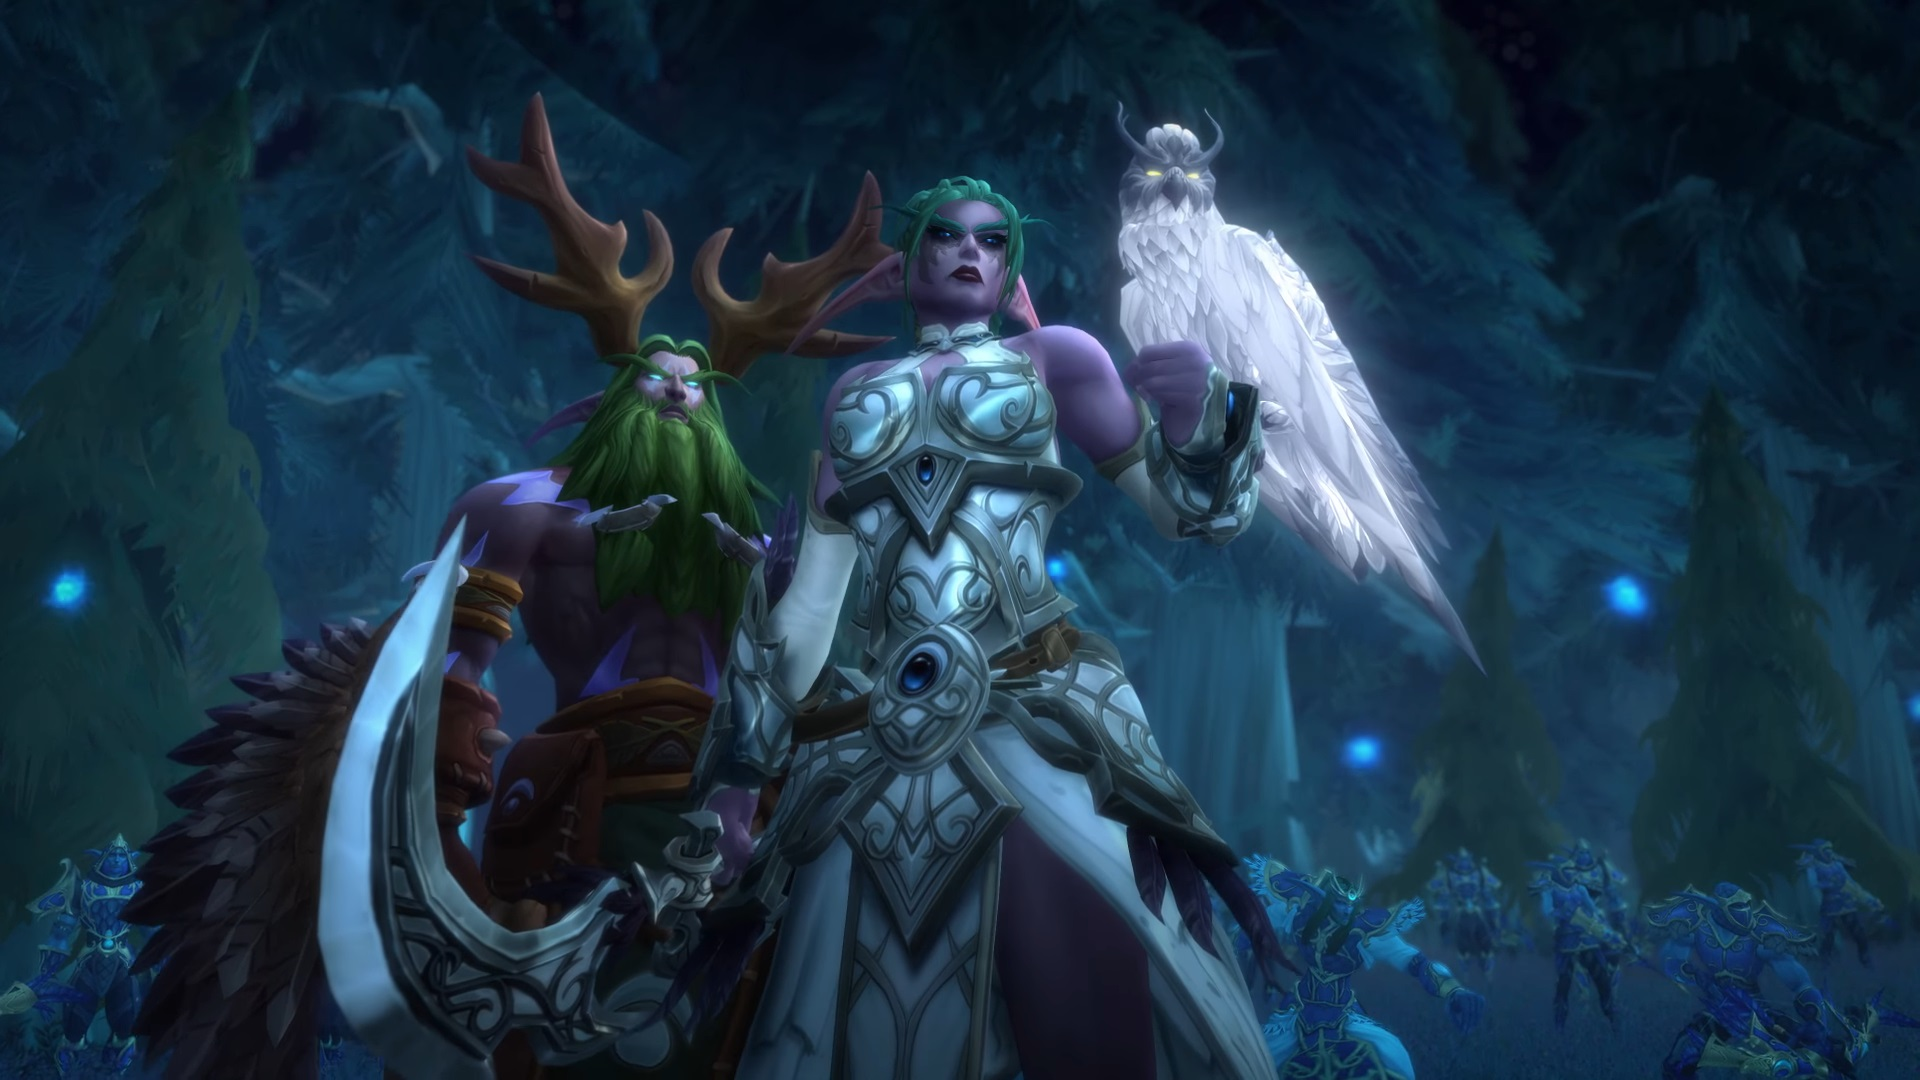 WoW Tyrande Malfurion Angry Night elves